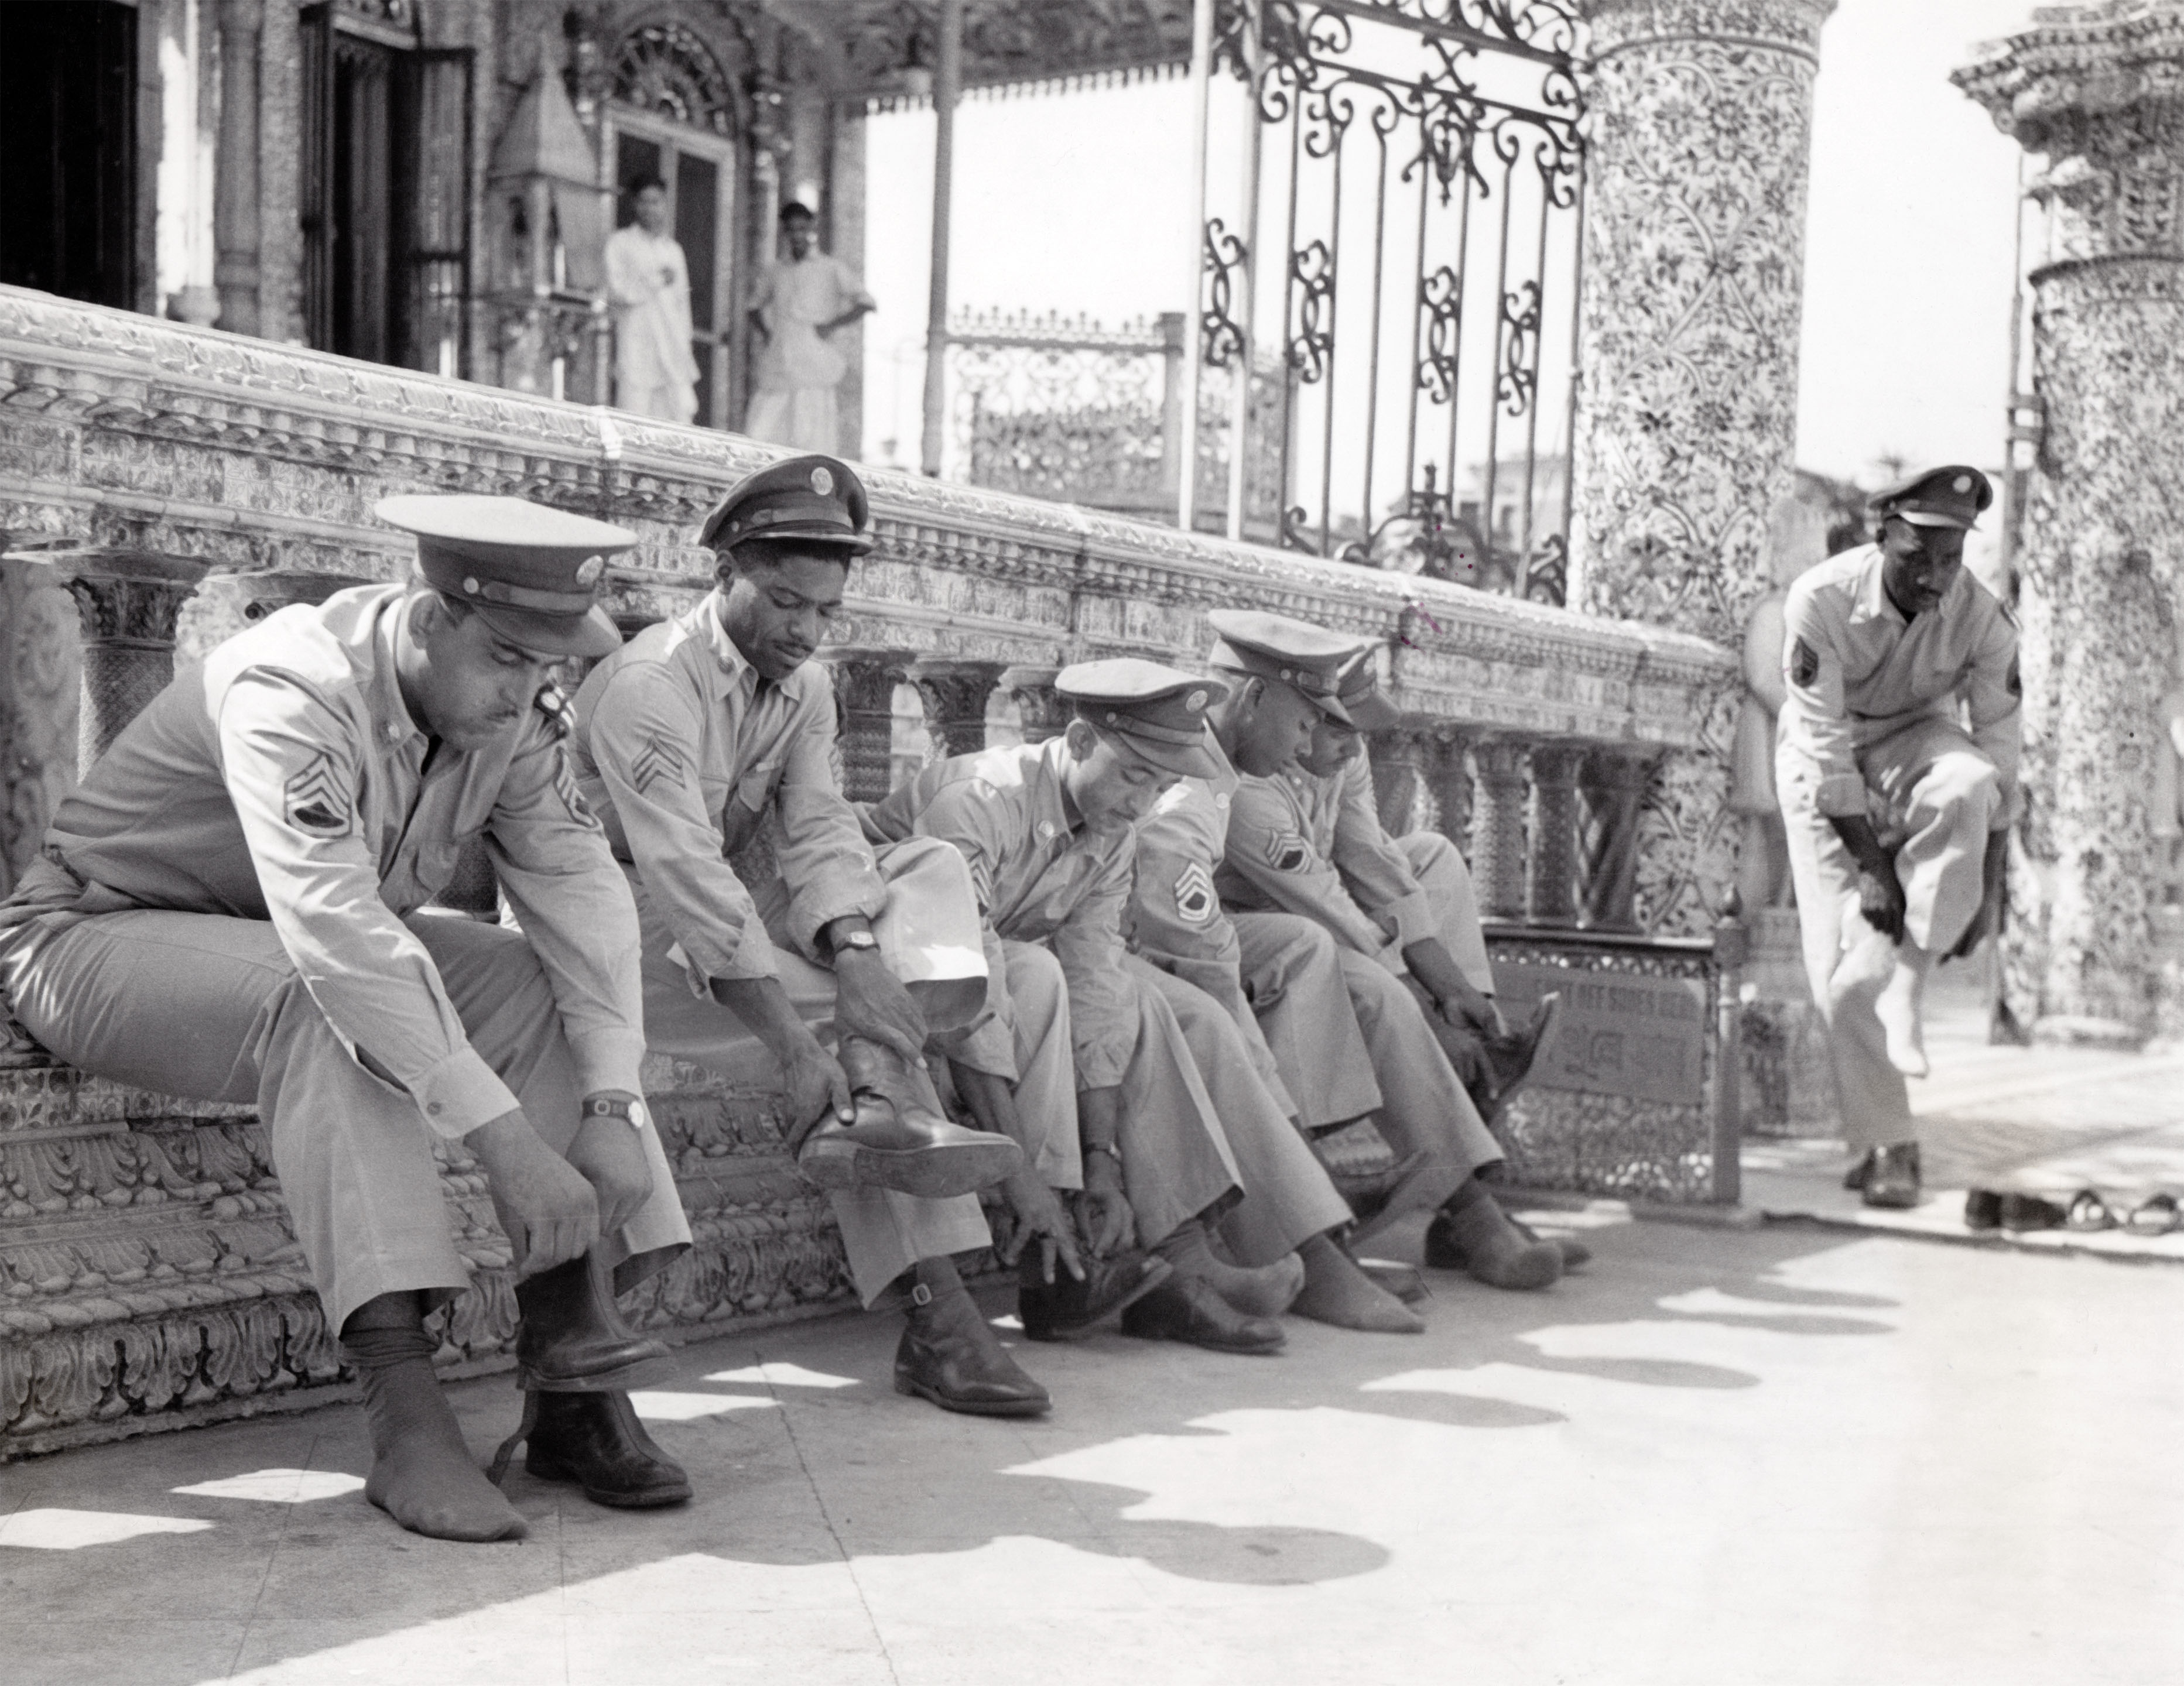 U.S. soldiers respectfully remove shoes before entering the Calcutta Jain Temple, 1943 Calcutta, West Bengal